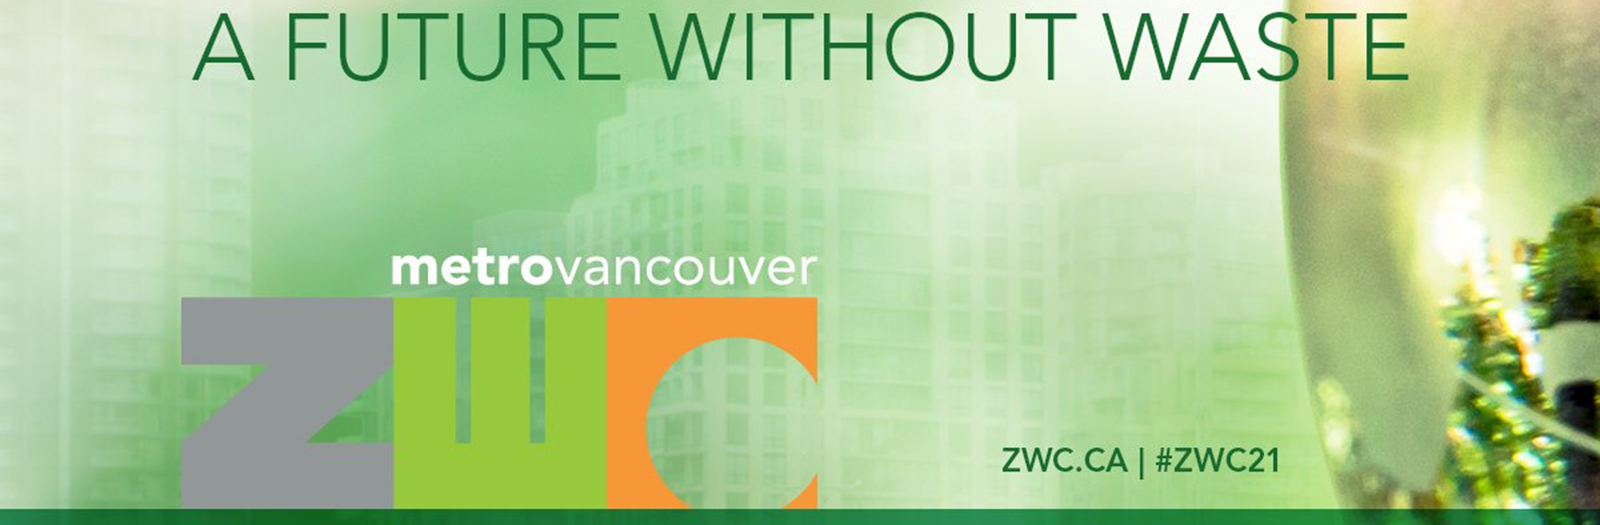 A future without waste conference banner